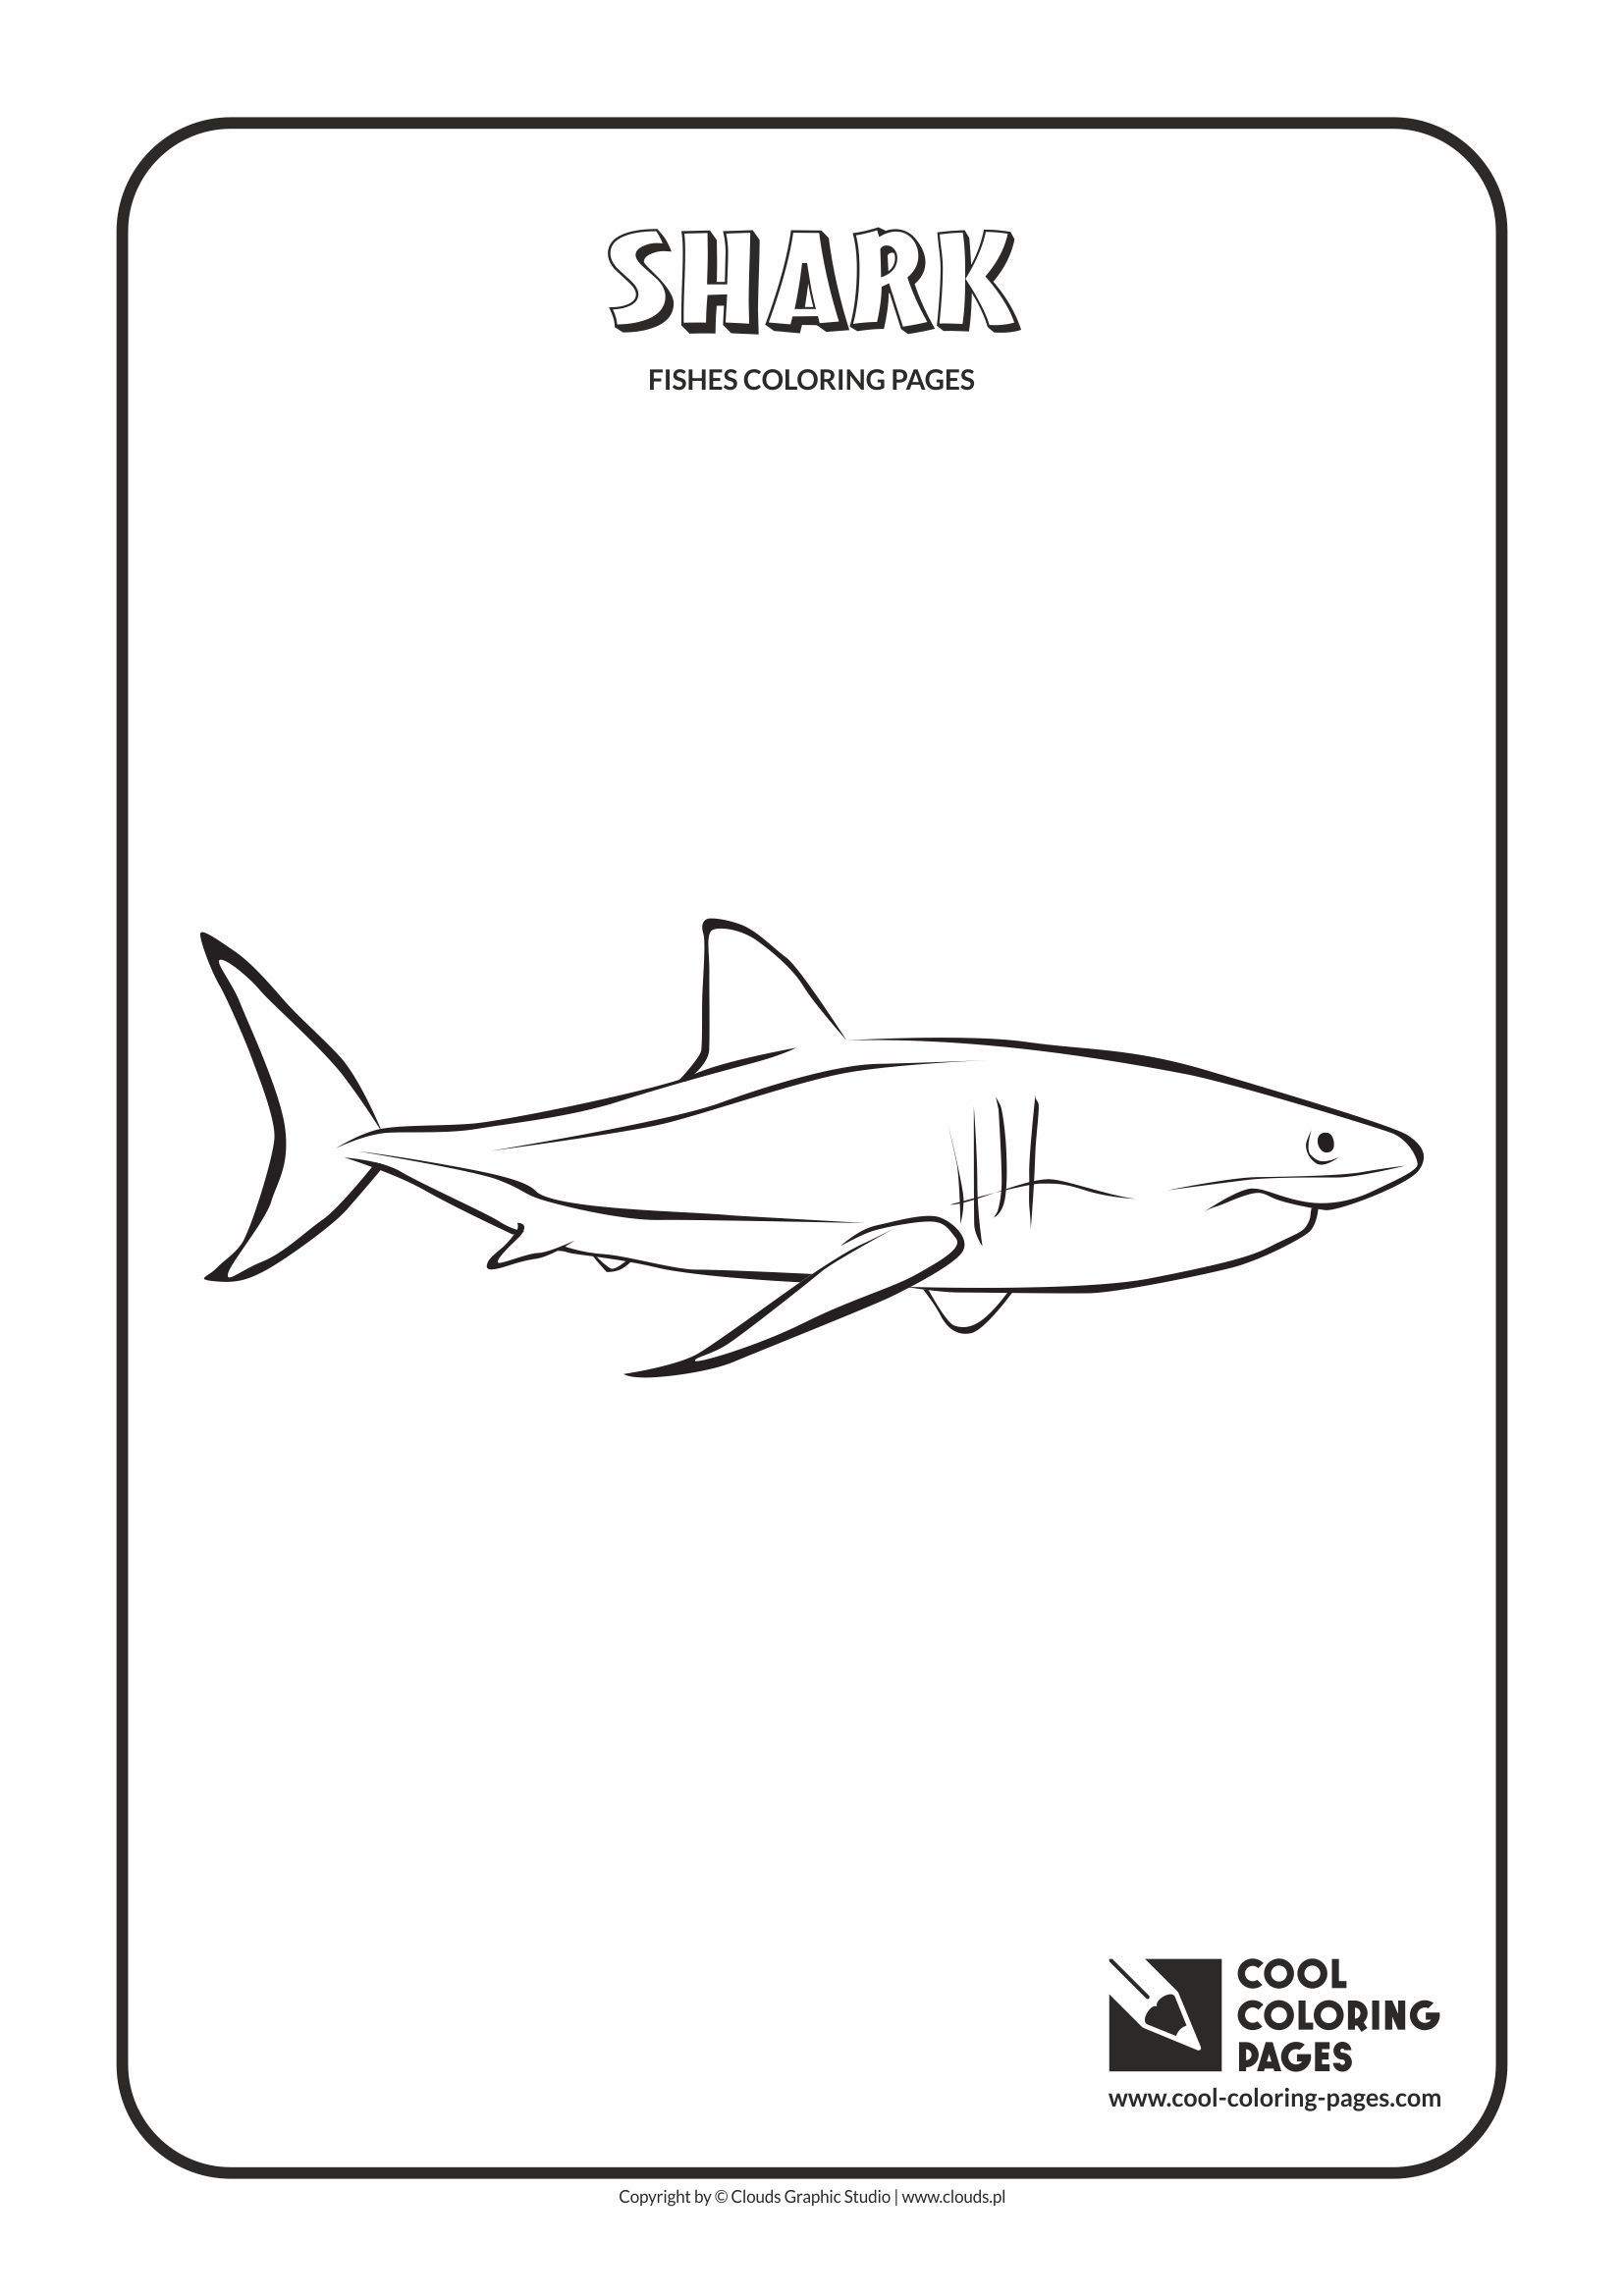 Shark Coloring Page Shark Coloring Pages Cool Coloring Pages